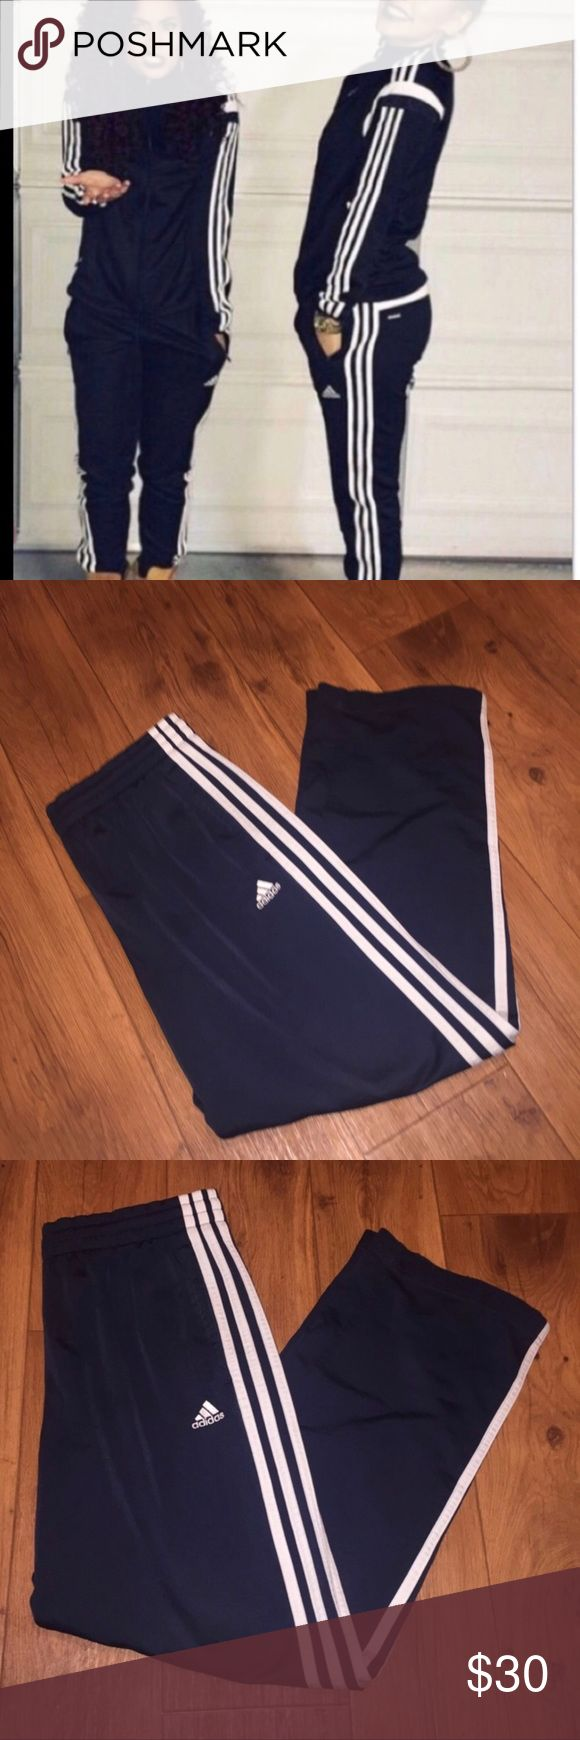 ⚡️Adidas Navy Superstar track pants 🌙Adidas Navy Athletic Track Pants  - Navy Blue with White racing down the side - Size Medium in Womans  - Loose fit, straits strait legs, thick waist band  -  100% polyester (Jersey like material)  - Light weight, breathable material - Perfect new condition adidas Pants Track Pants & Joggers